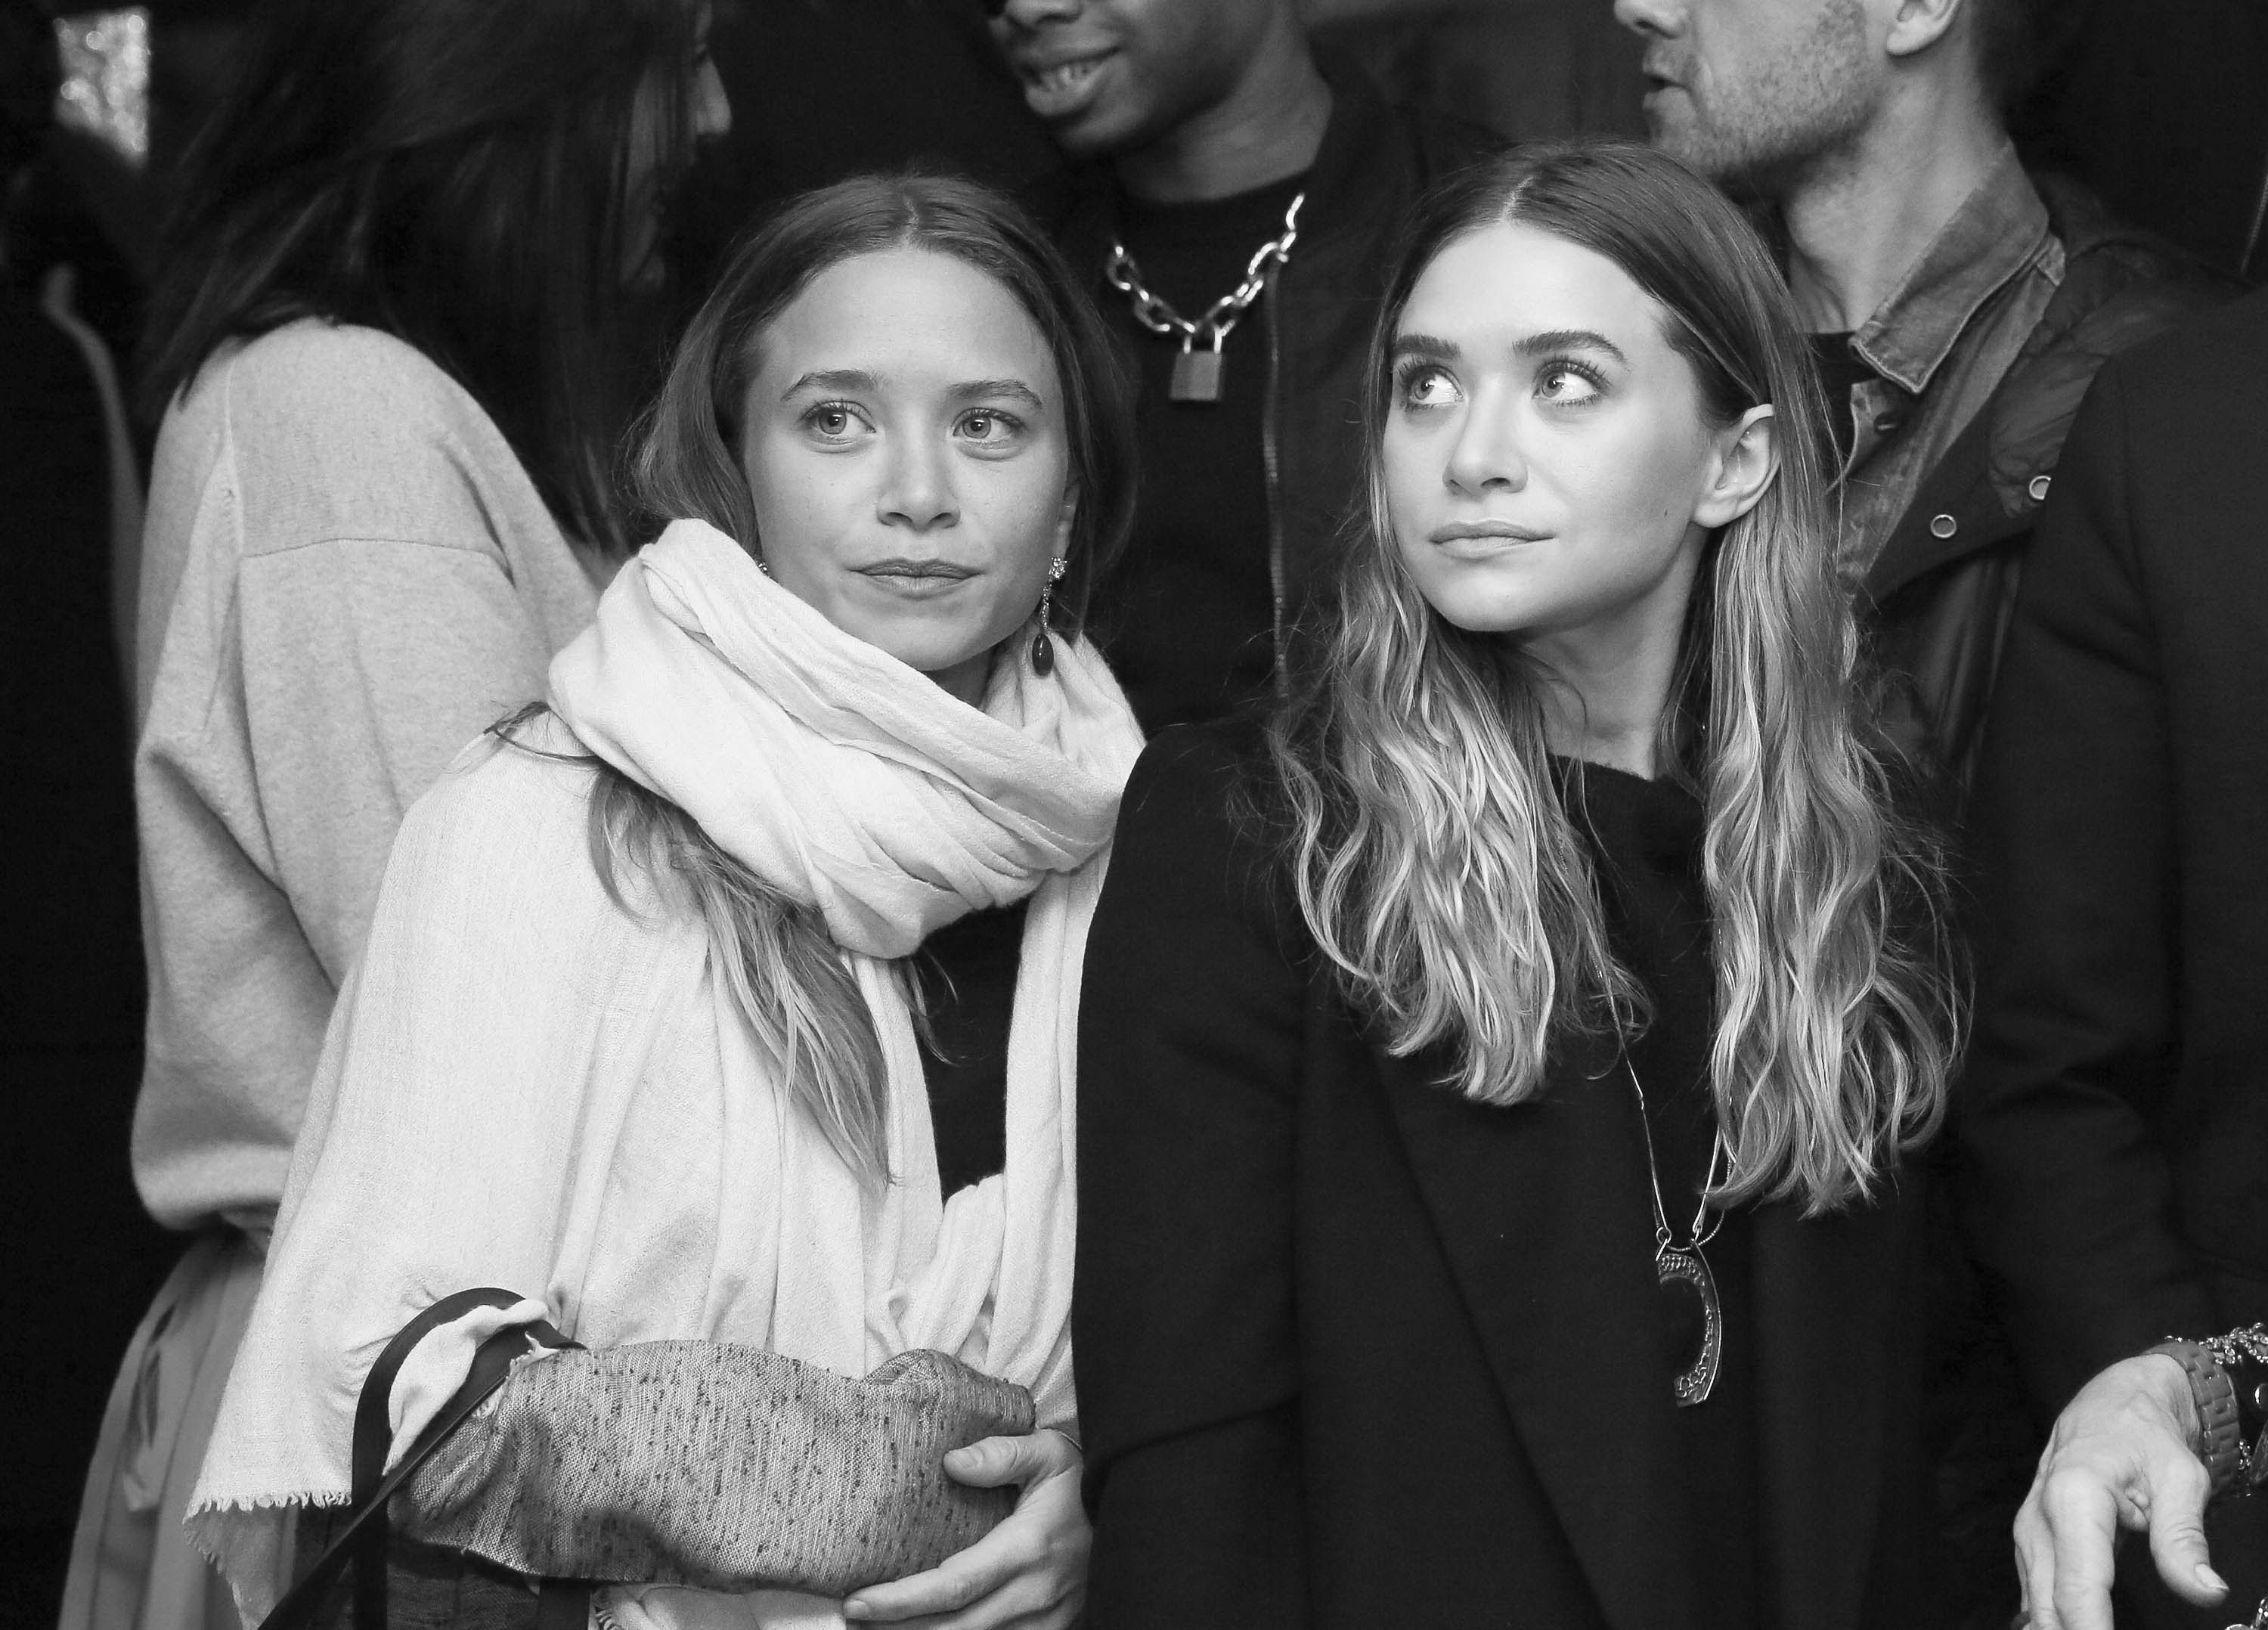 NEW YORK, NY - MARCH 16: (EDITORS NOTE: Image has been converted to black and white)  The Olsen Twins, Mary-Kate Olsen (L) and Ashley Olsen attend 2015 CFDA Fashion Awards Announcement Party at The Weather Room at the Top of the Rock on March 16, 2015 in New York City.  (Photo by Rob Kim/Getty Images)